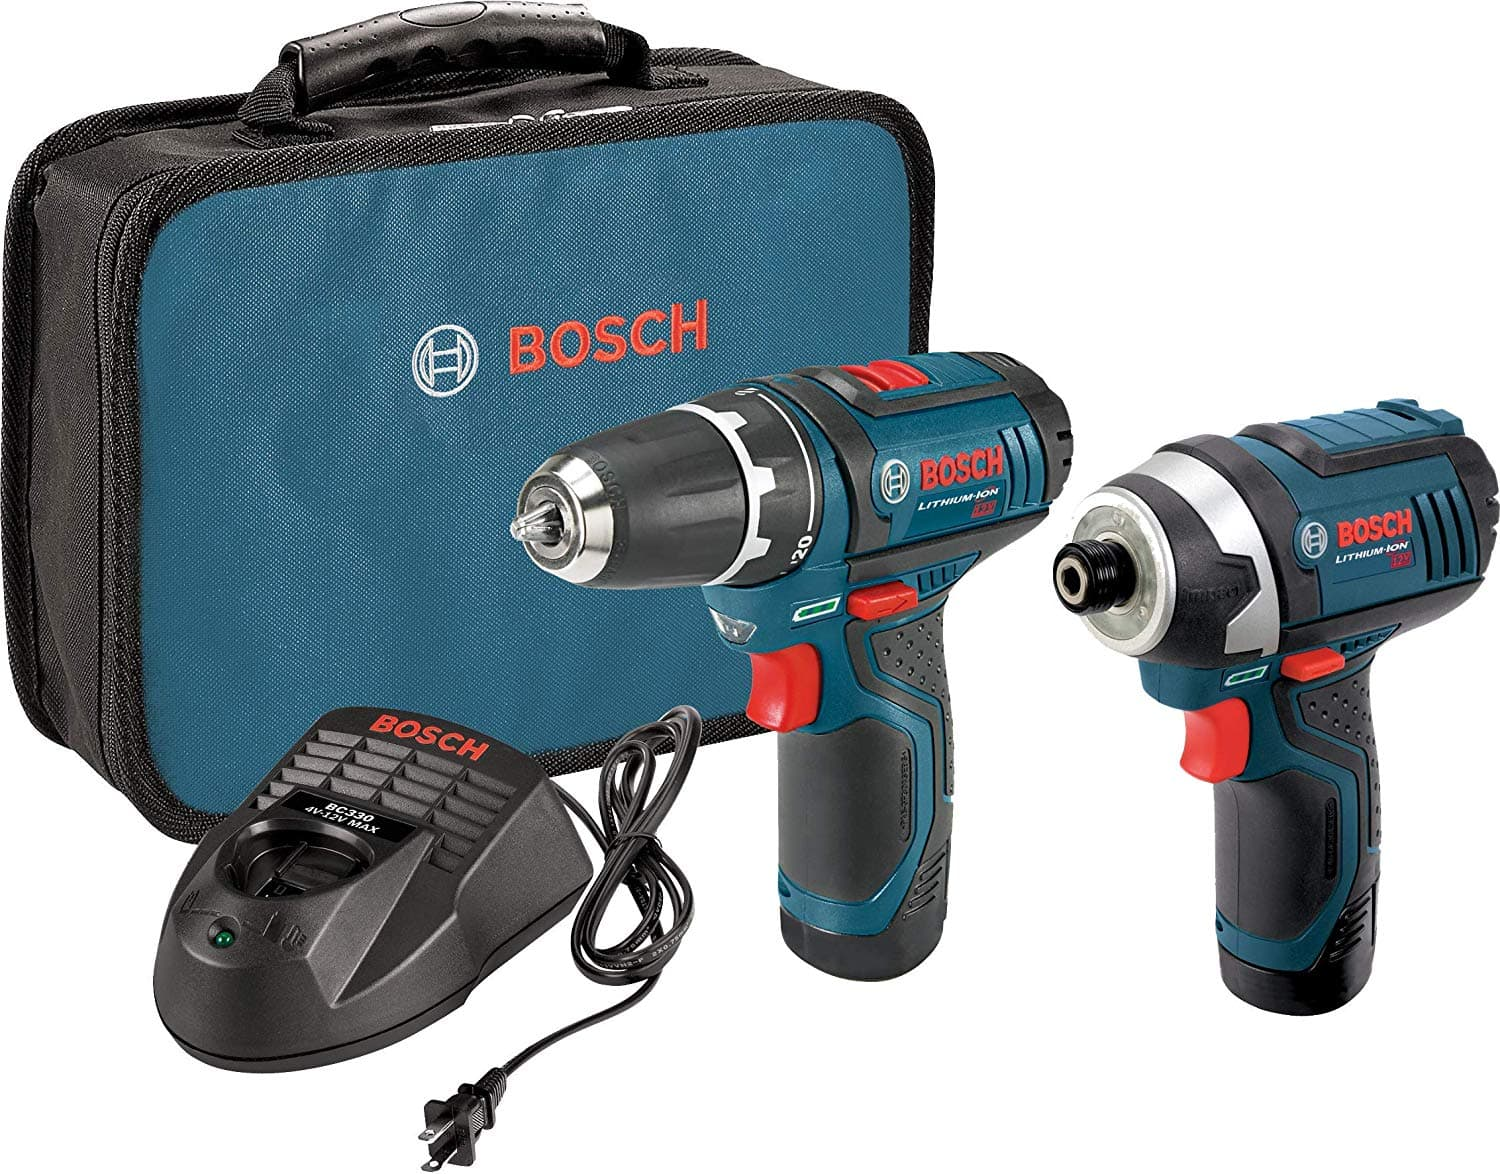 Bosch Power Tools Combo Kit CLPK22-120 - 12-Volt Cordless Tool Set (Drill/Driver and Impact Driver) with 2 Batteries, Charger and Case - $99